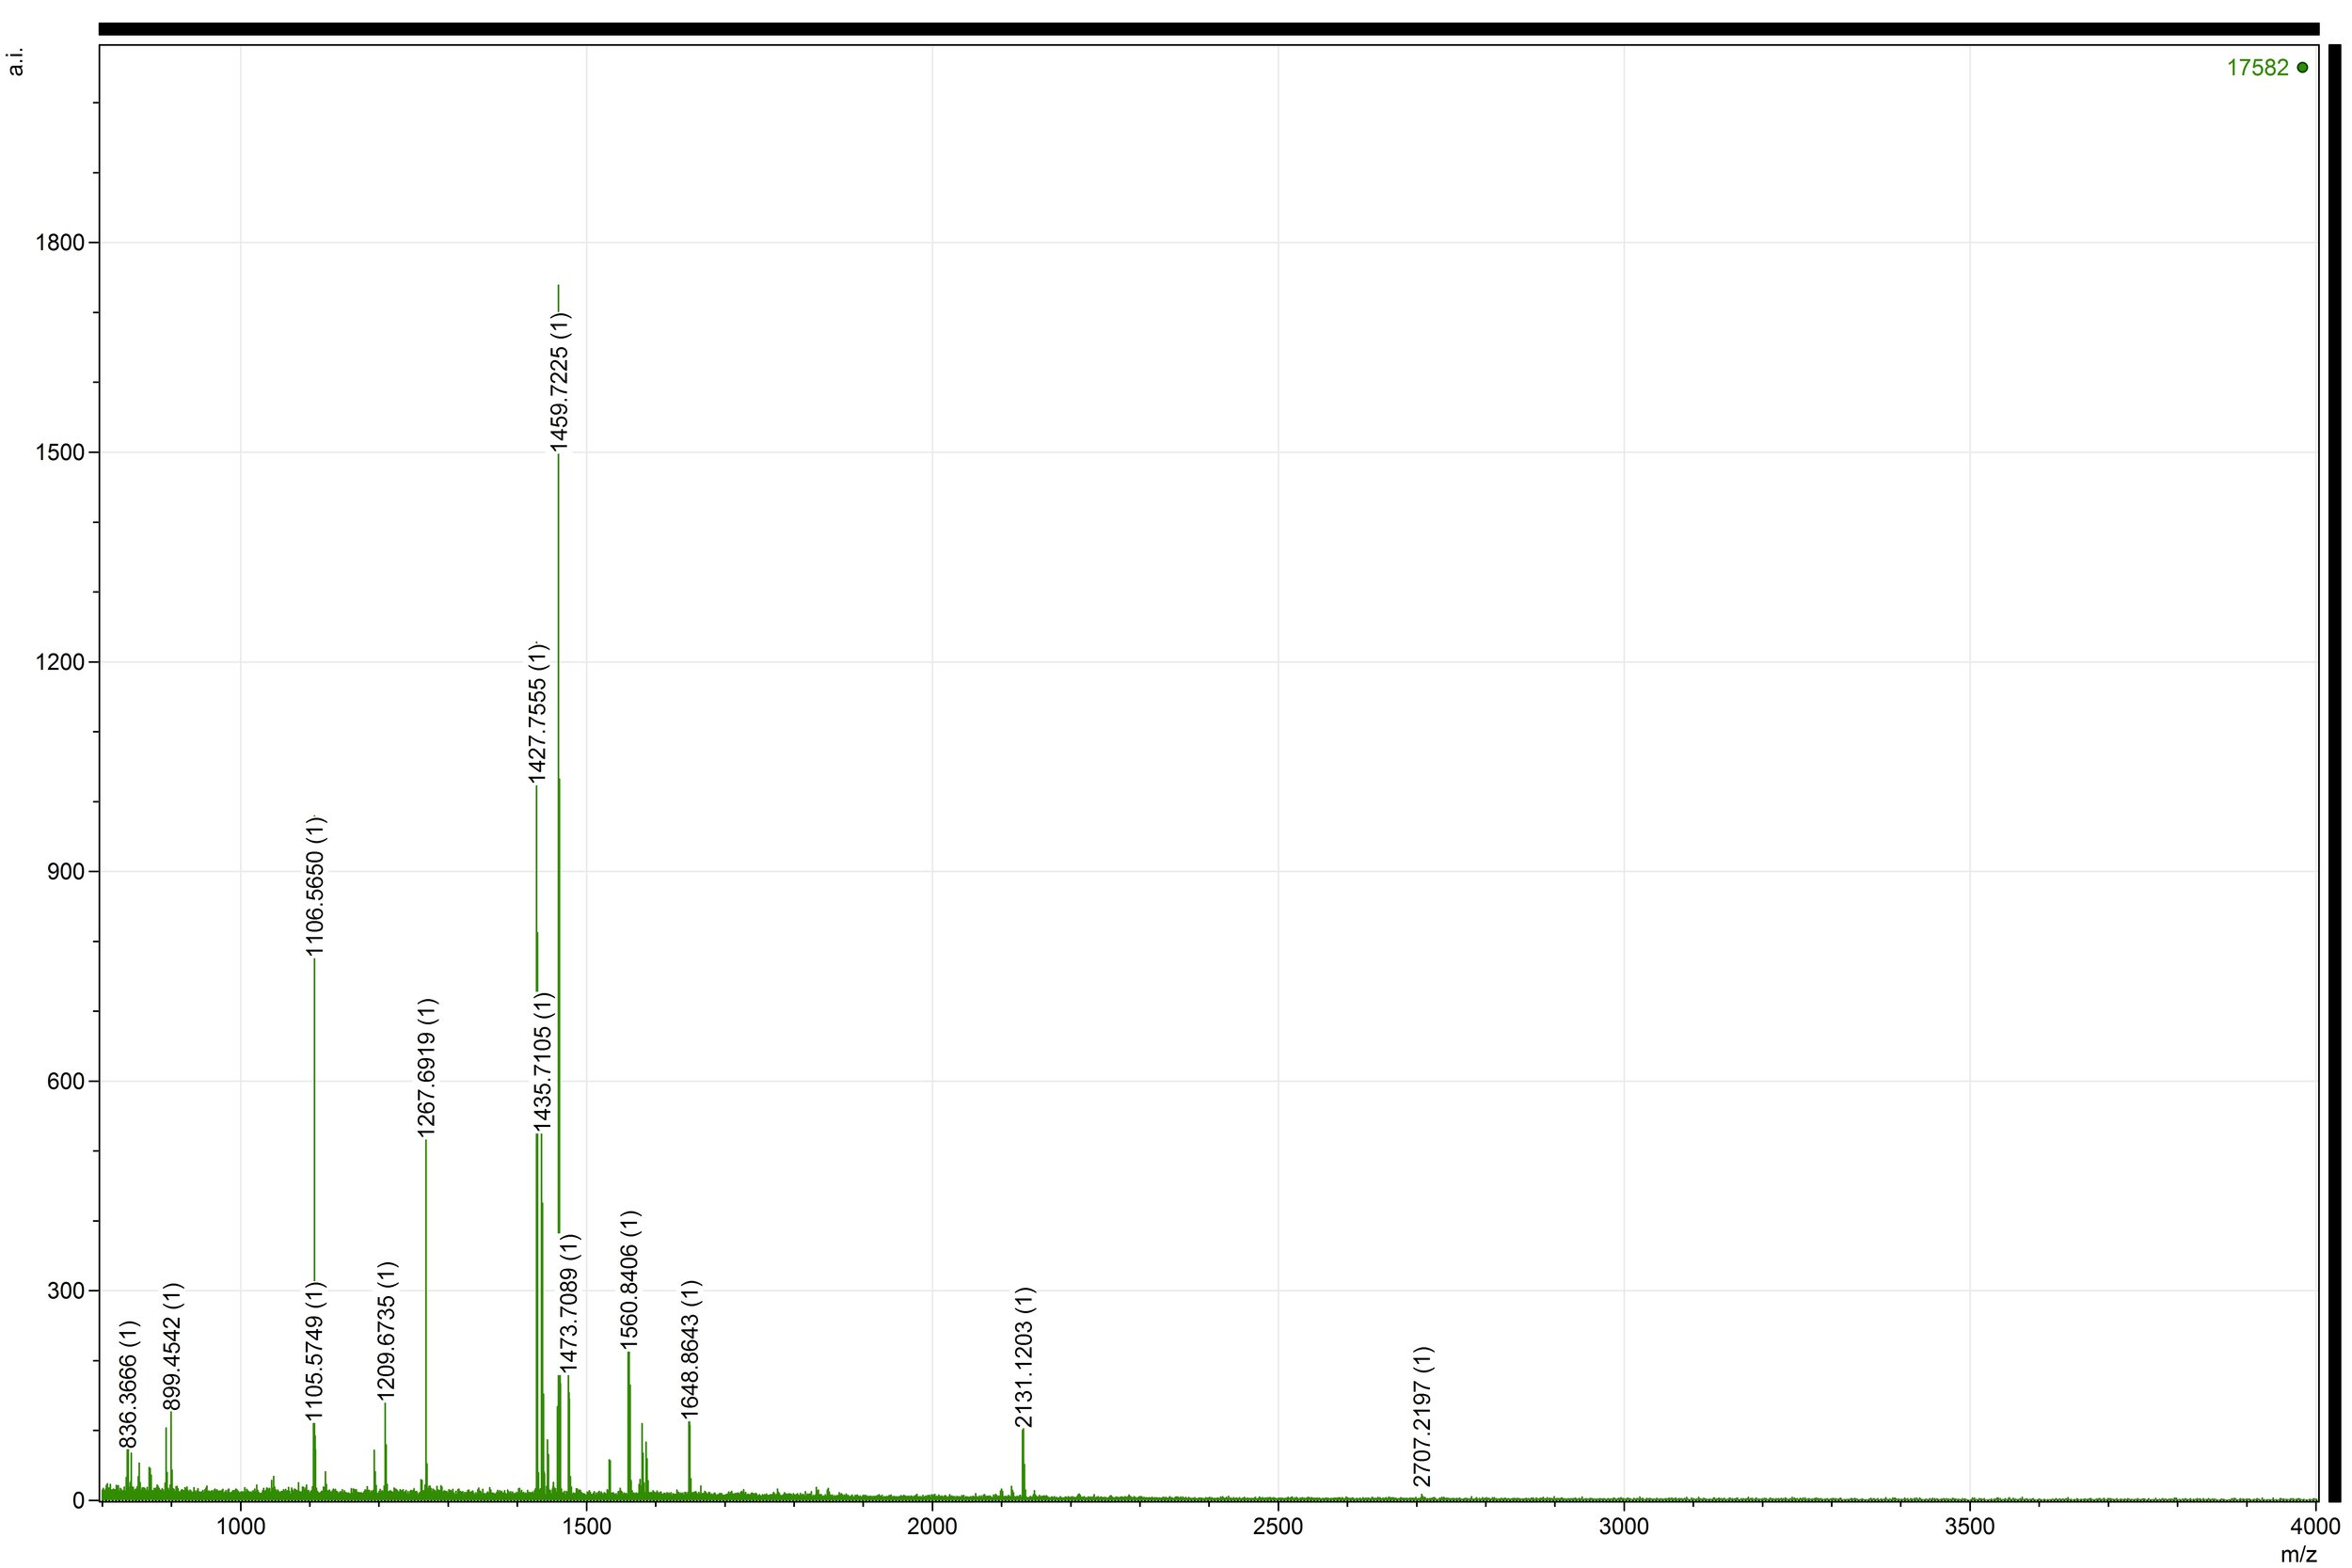 Mass spectrum for leather sample from shoe 228.1955 showing diagnostic peak at 1105 m/z.